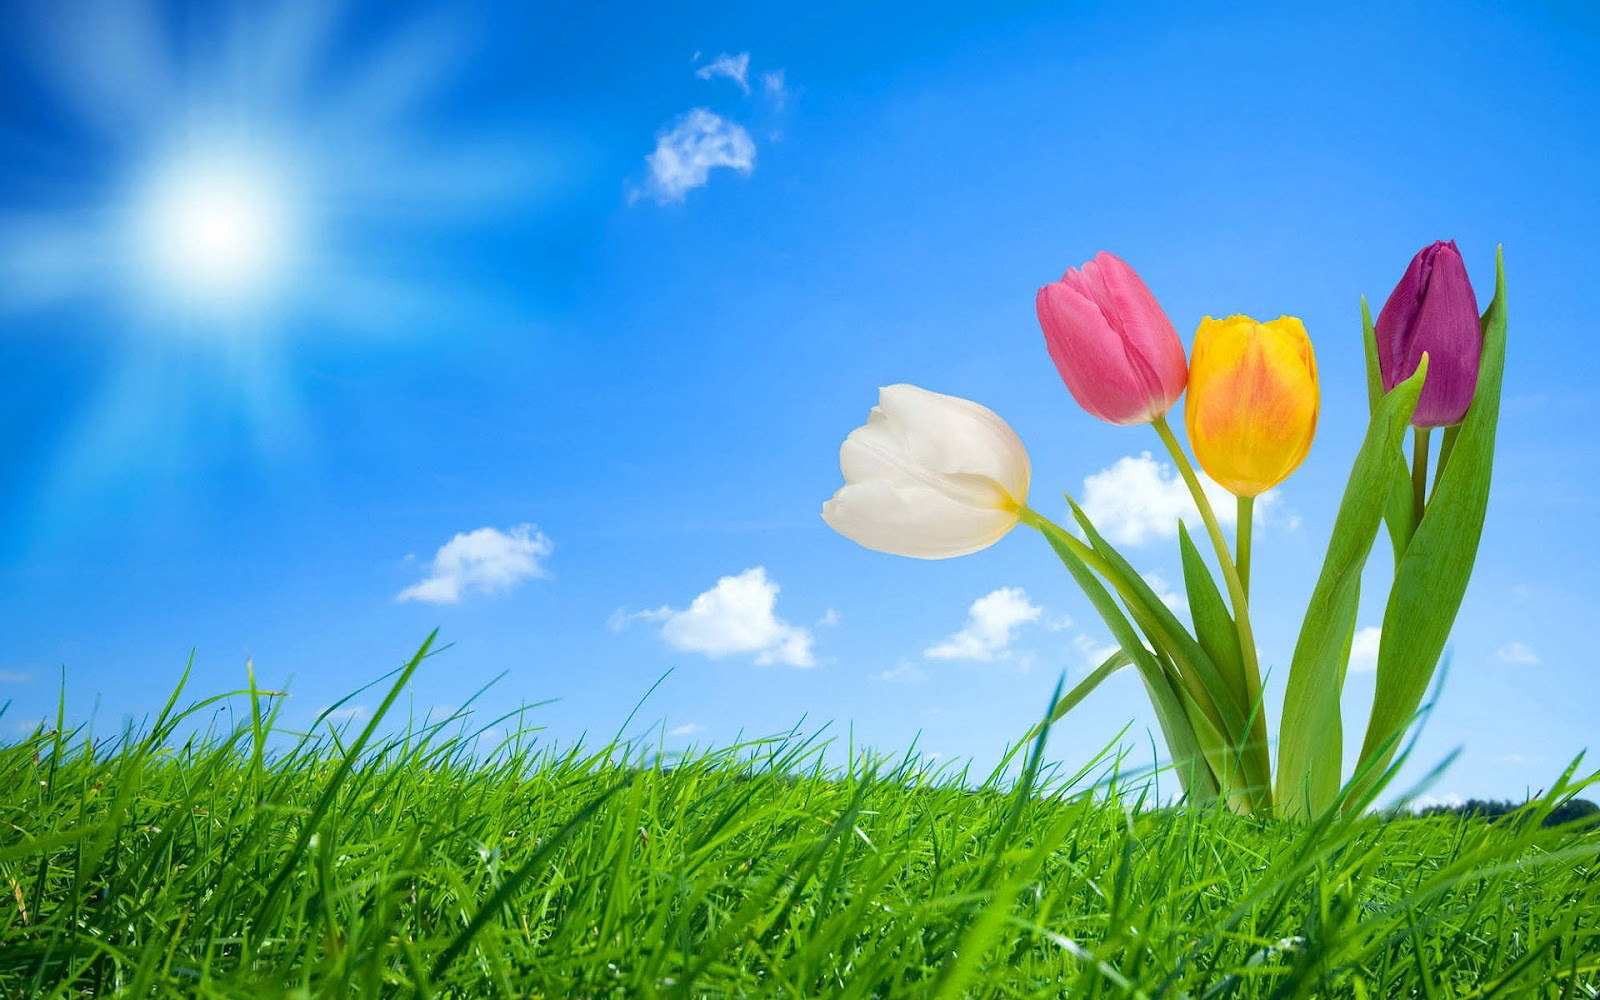 spring wallpapers hd spring wallpaper background picture 26jpg 1600x1000